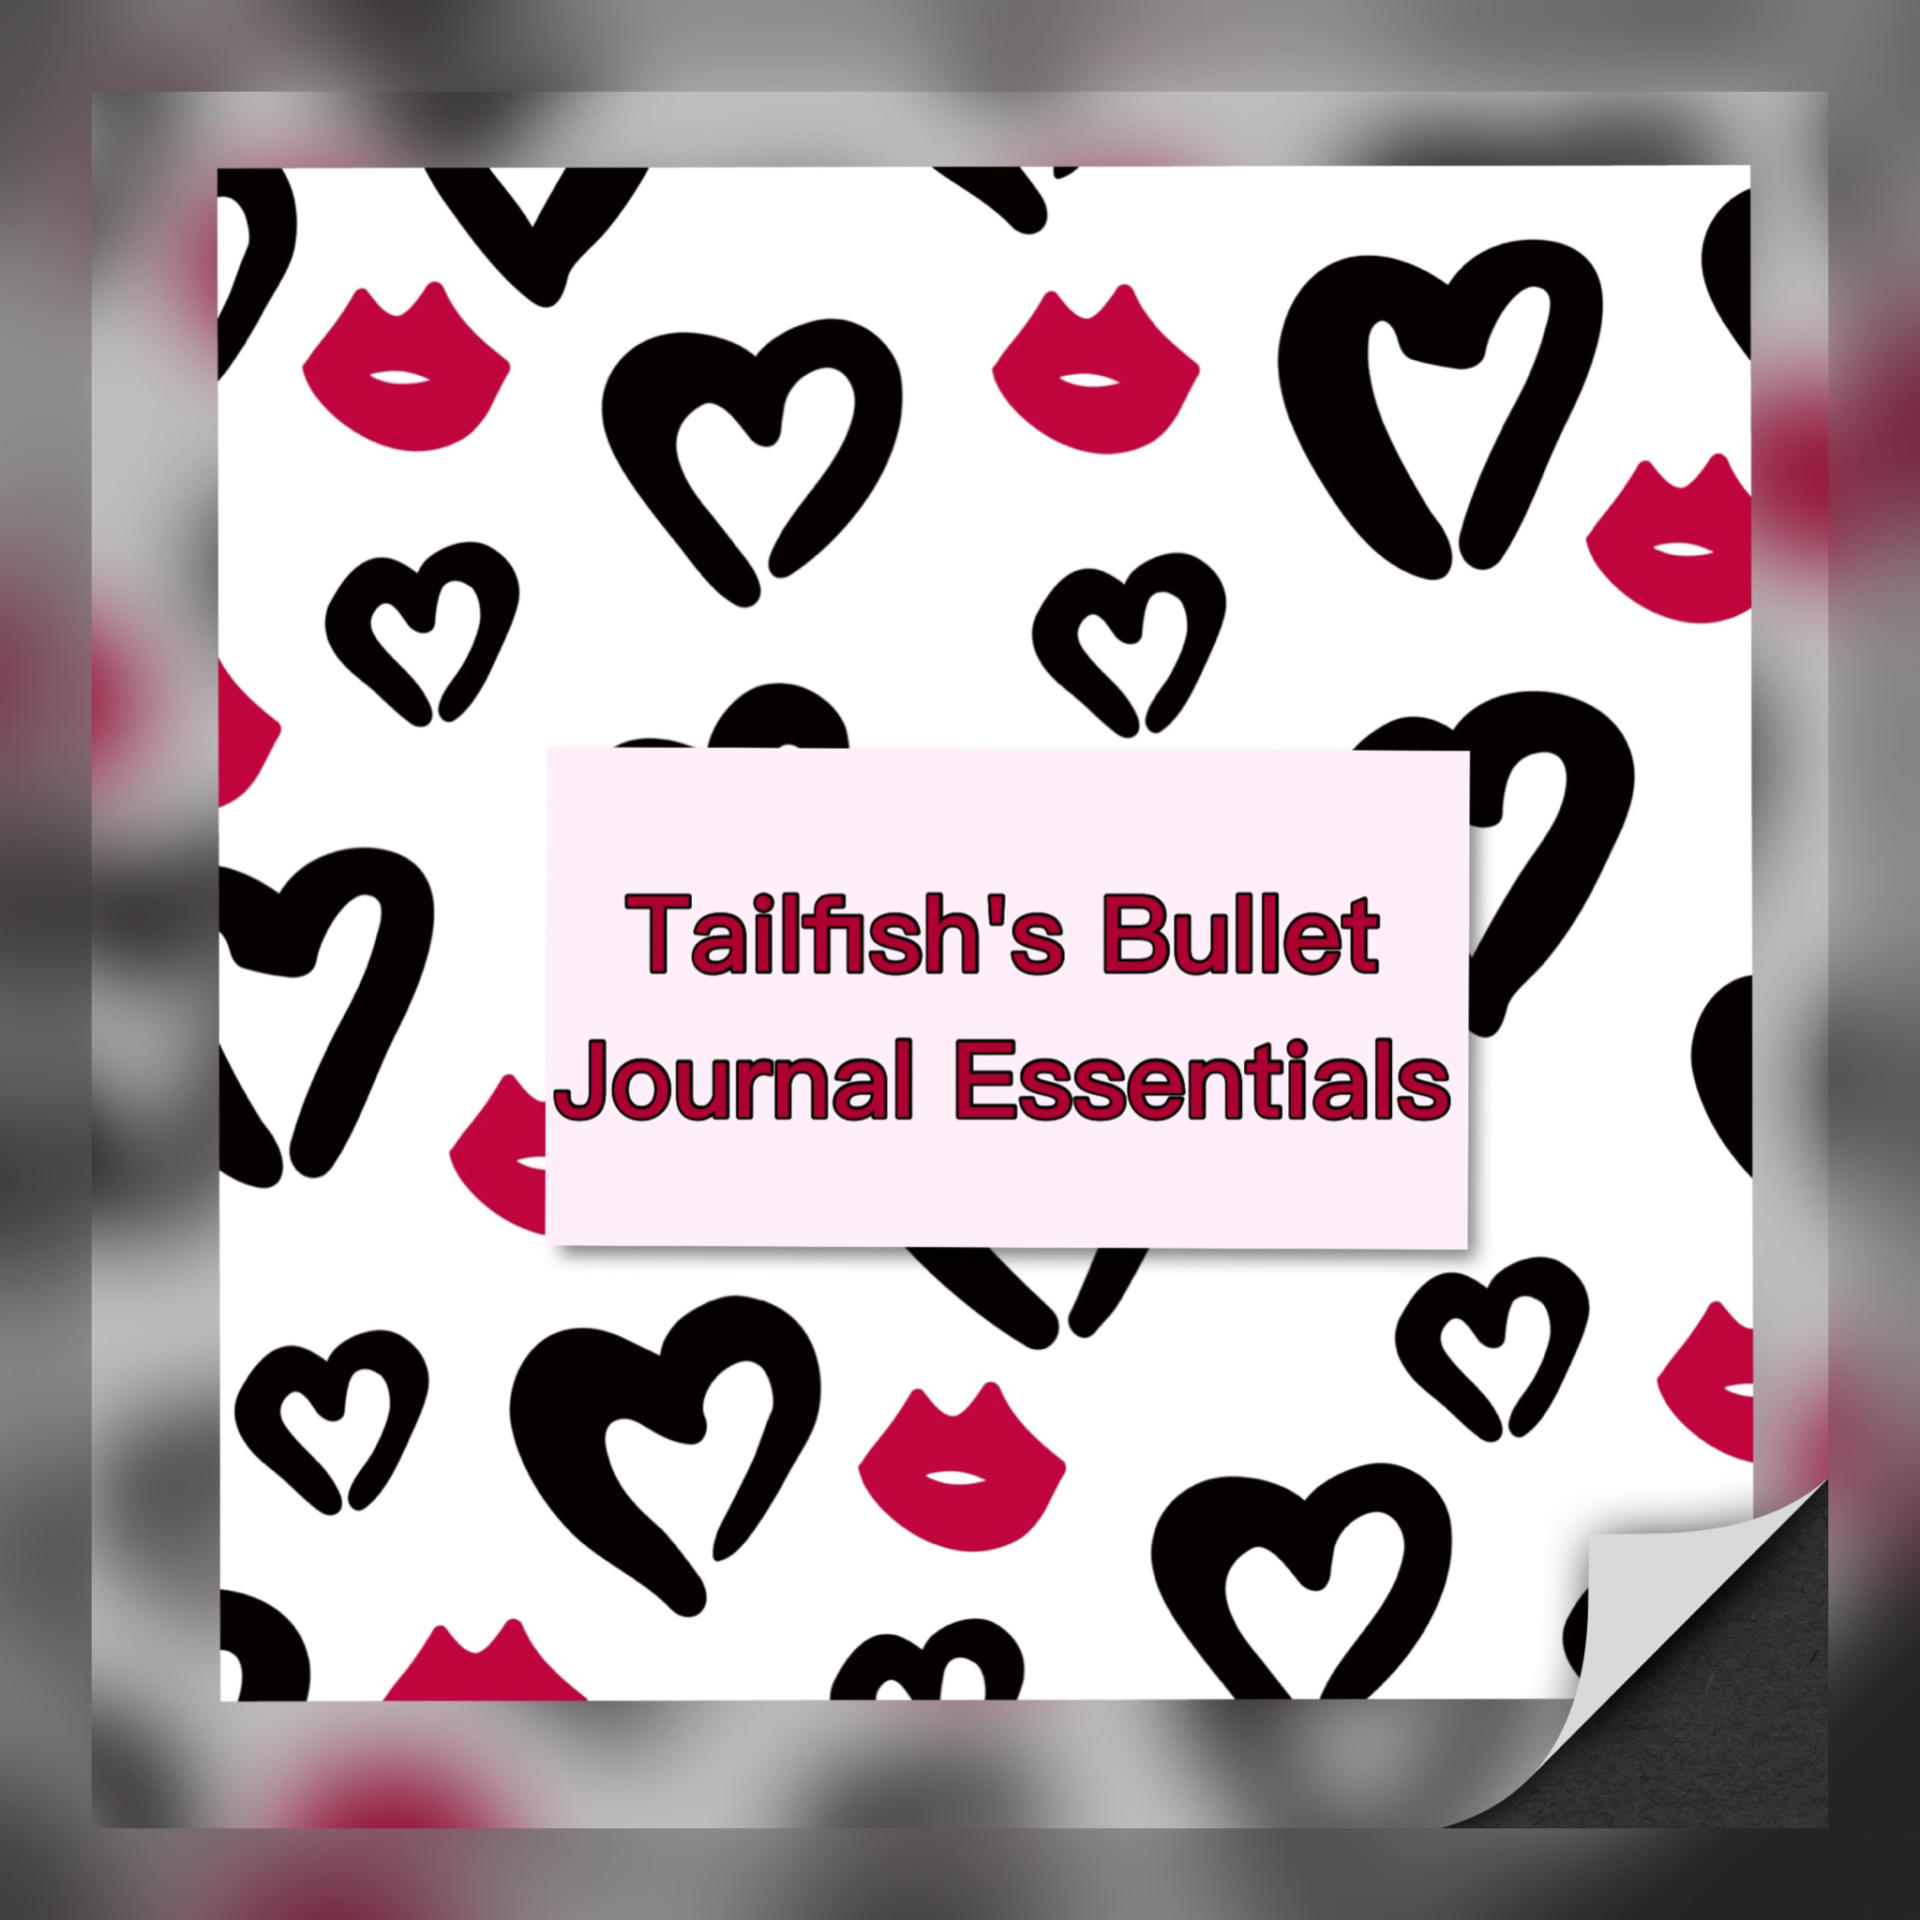 Image - Tailfish's Bullet Journal Essentials